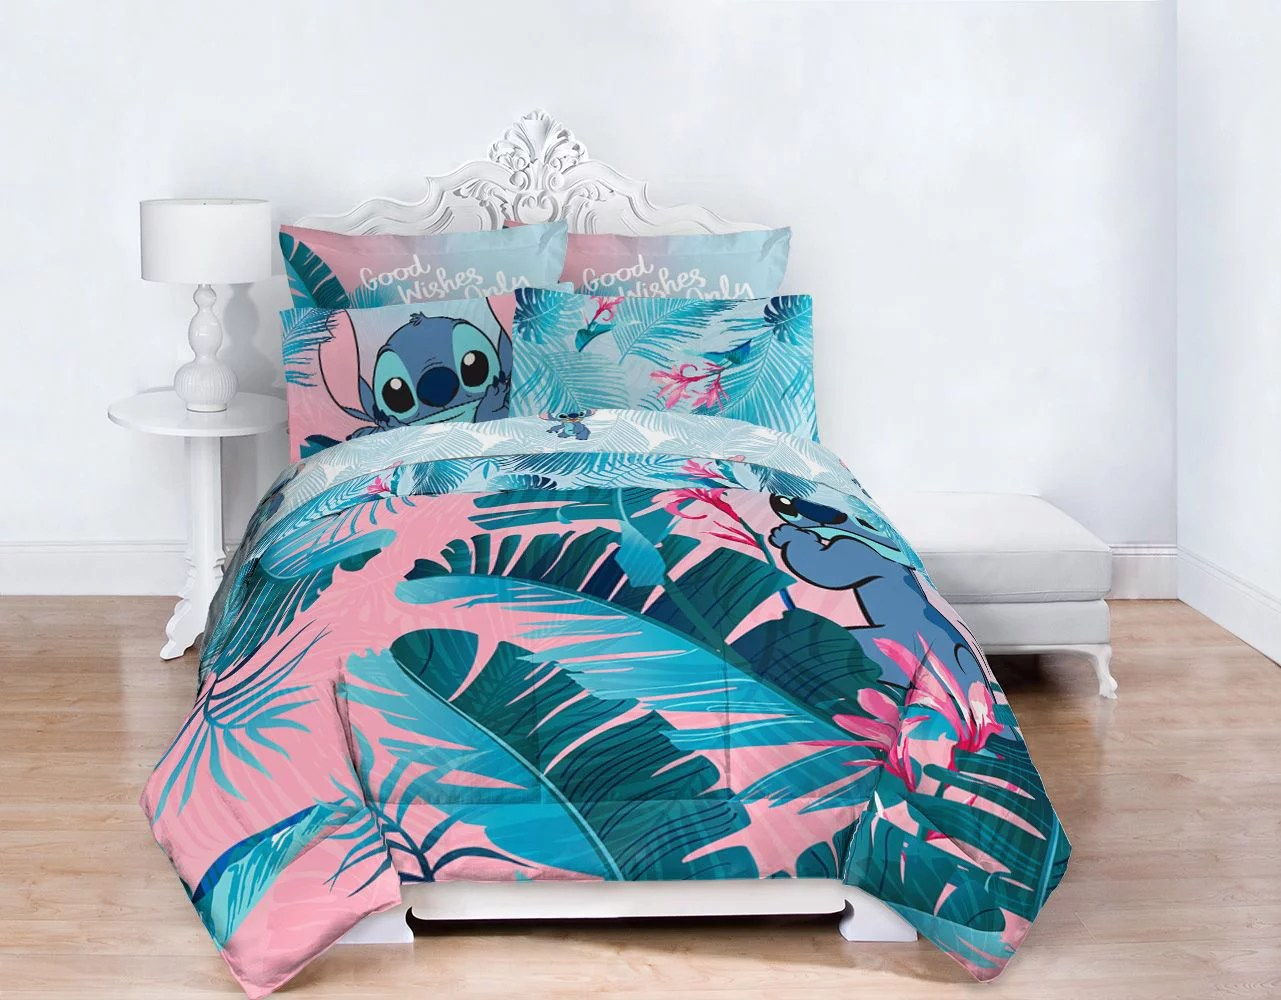 Lilo Stitch Blue Pink Tropical Flowers Kids Bed In A Bag Bedding Set W Reversible Comforter Walmart Com Walmart Com